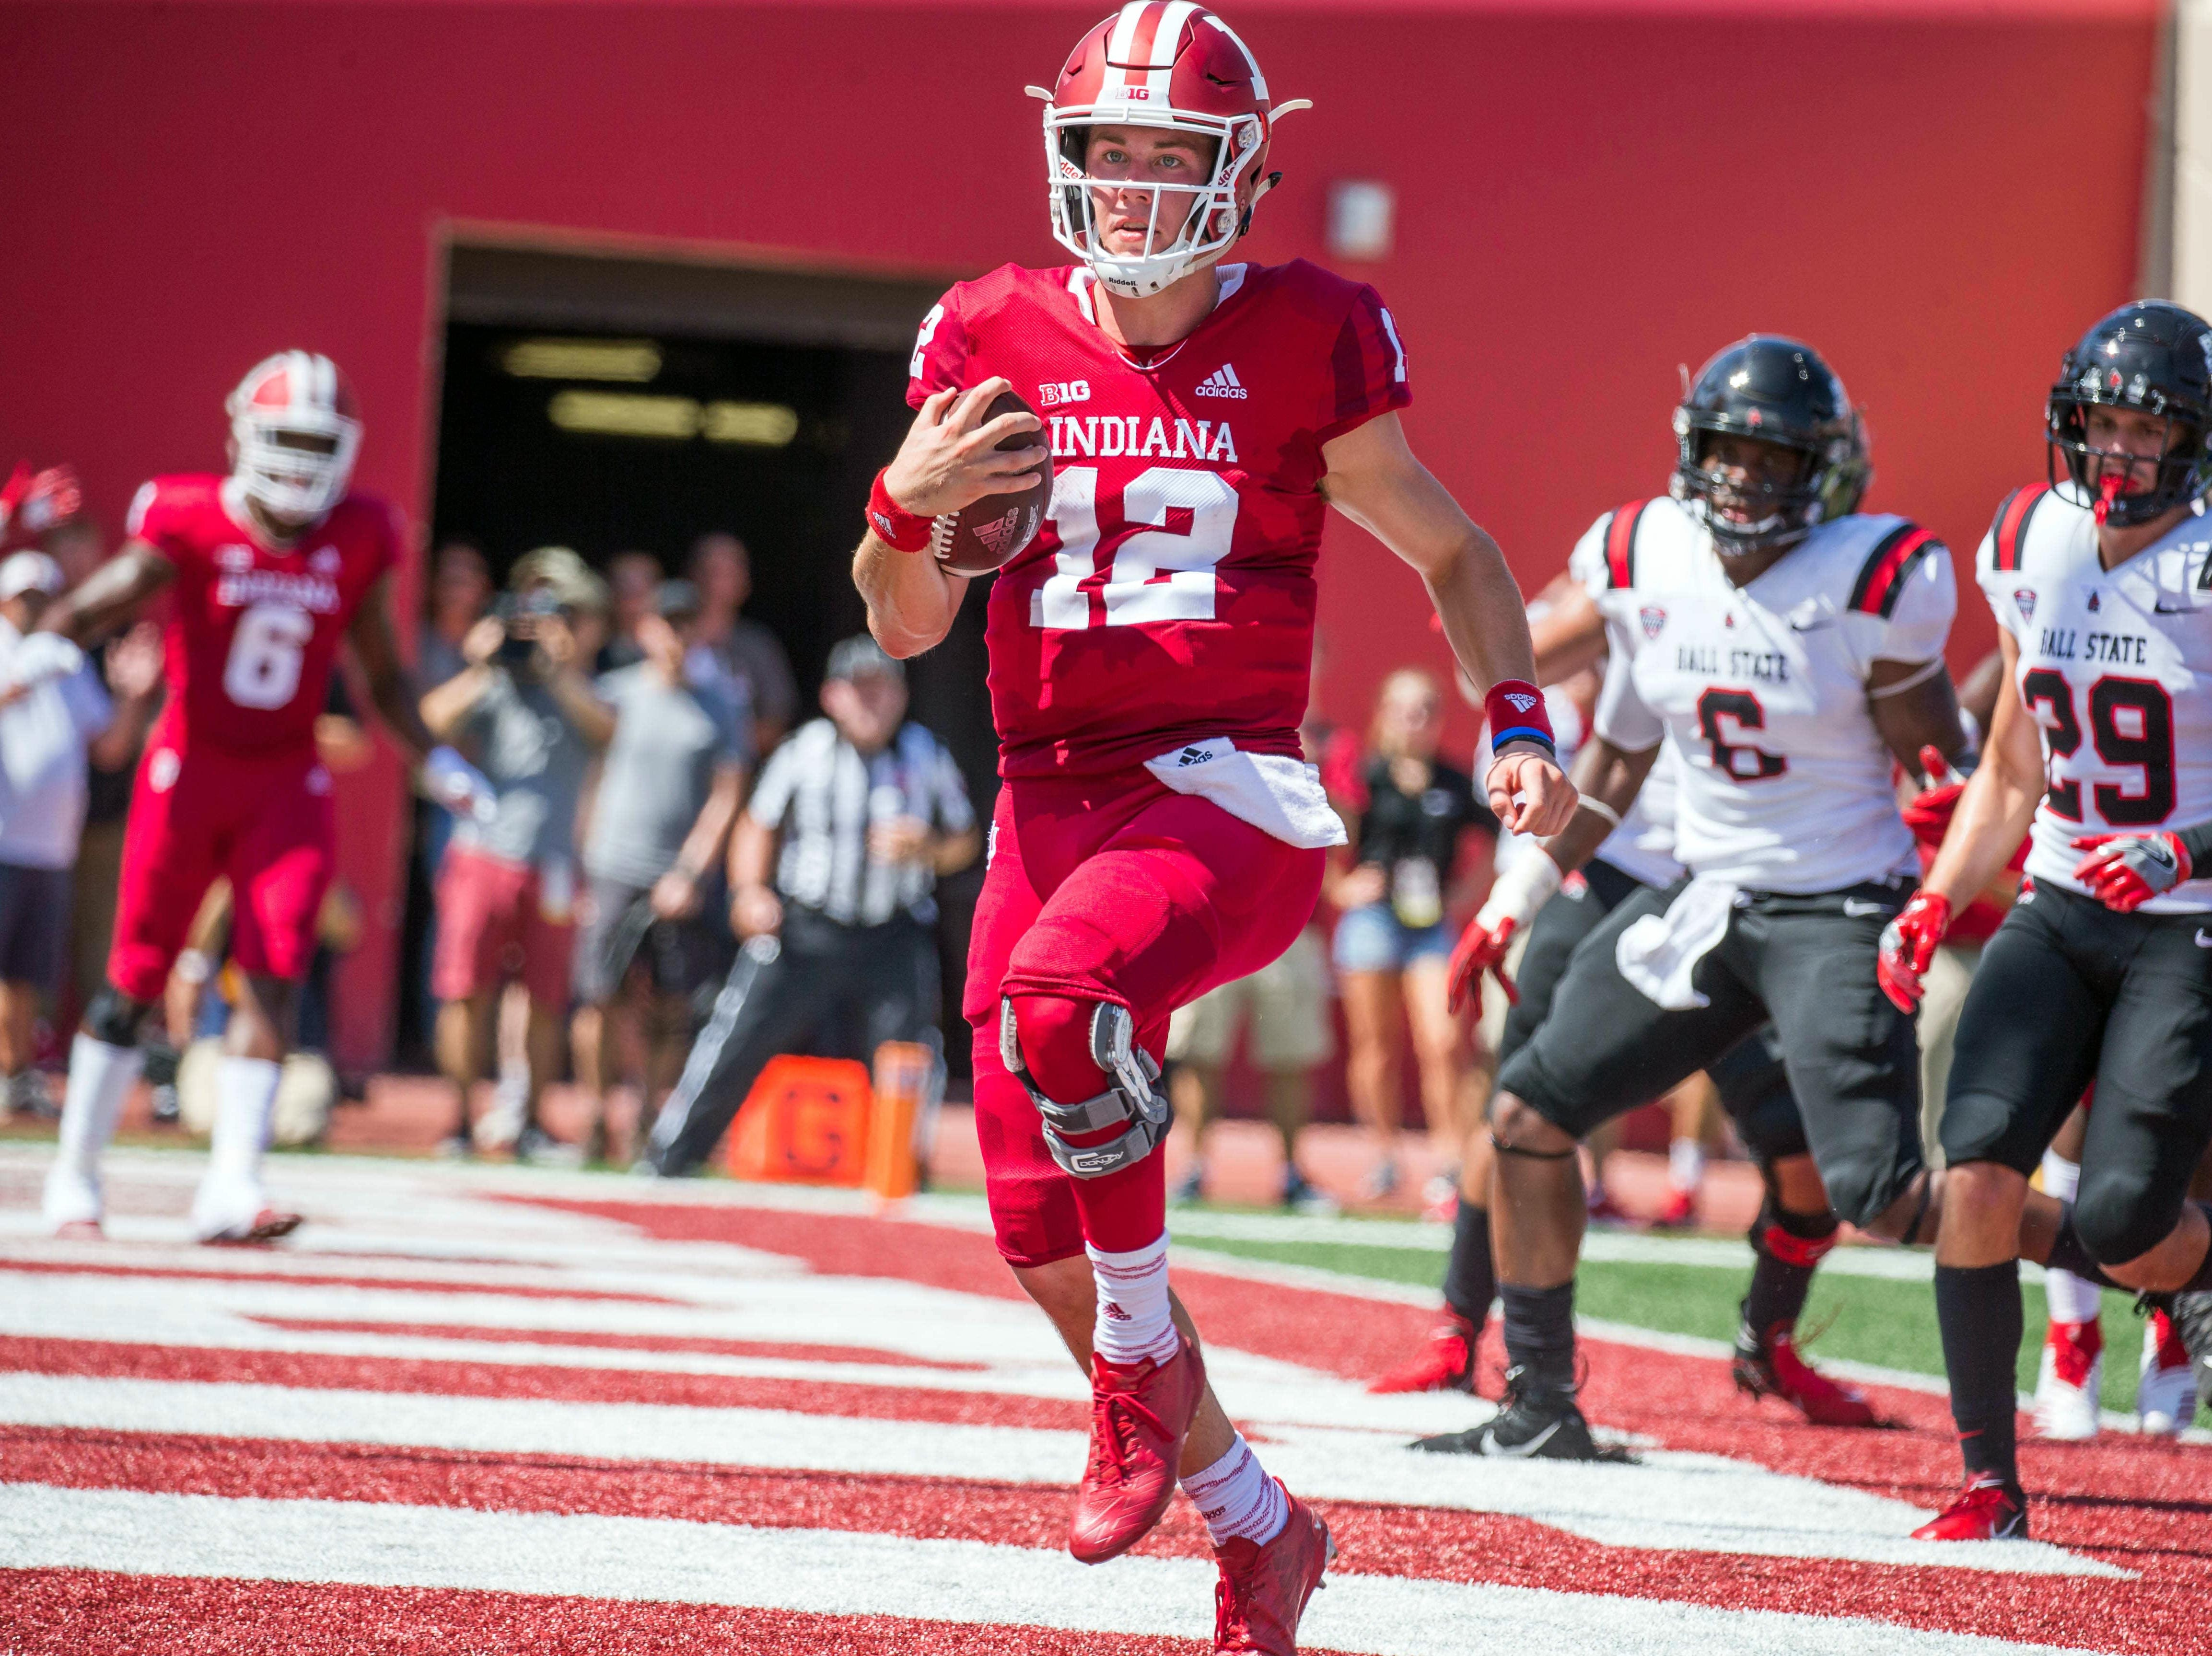 Indiana Hoosiers quarterback Peyton Ramsey (12) celebrates a touchdown in the second quarter against the Ball State Cardinals at Memorial Stadium .